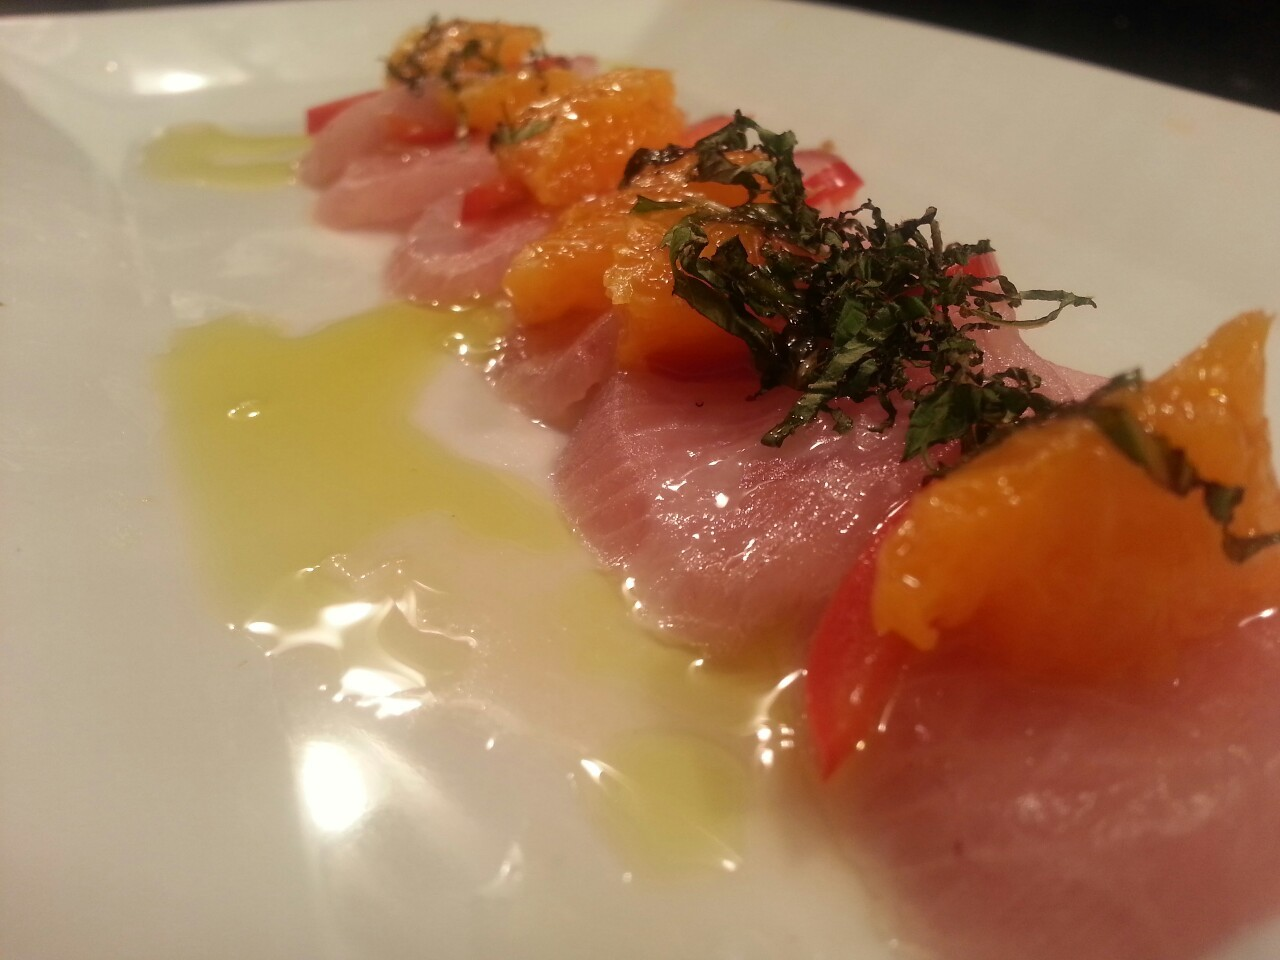 Yellowtail with tangerine, mint, pickled jalapeno, and lemon.